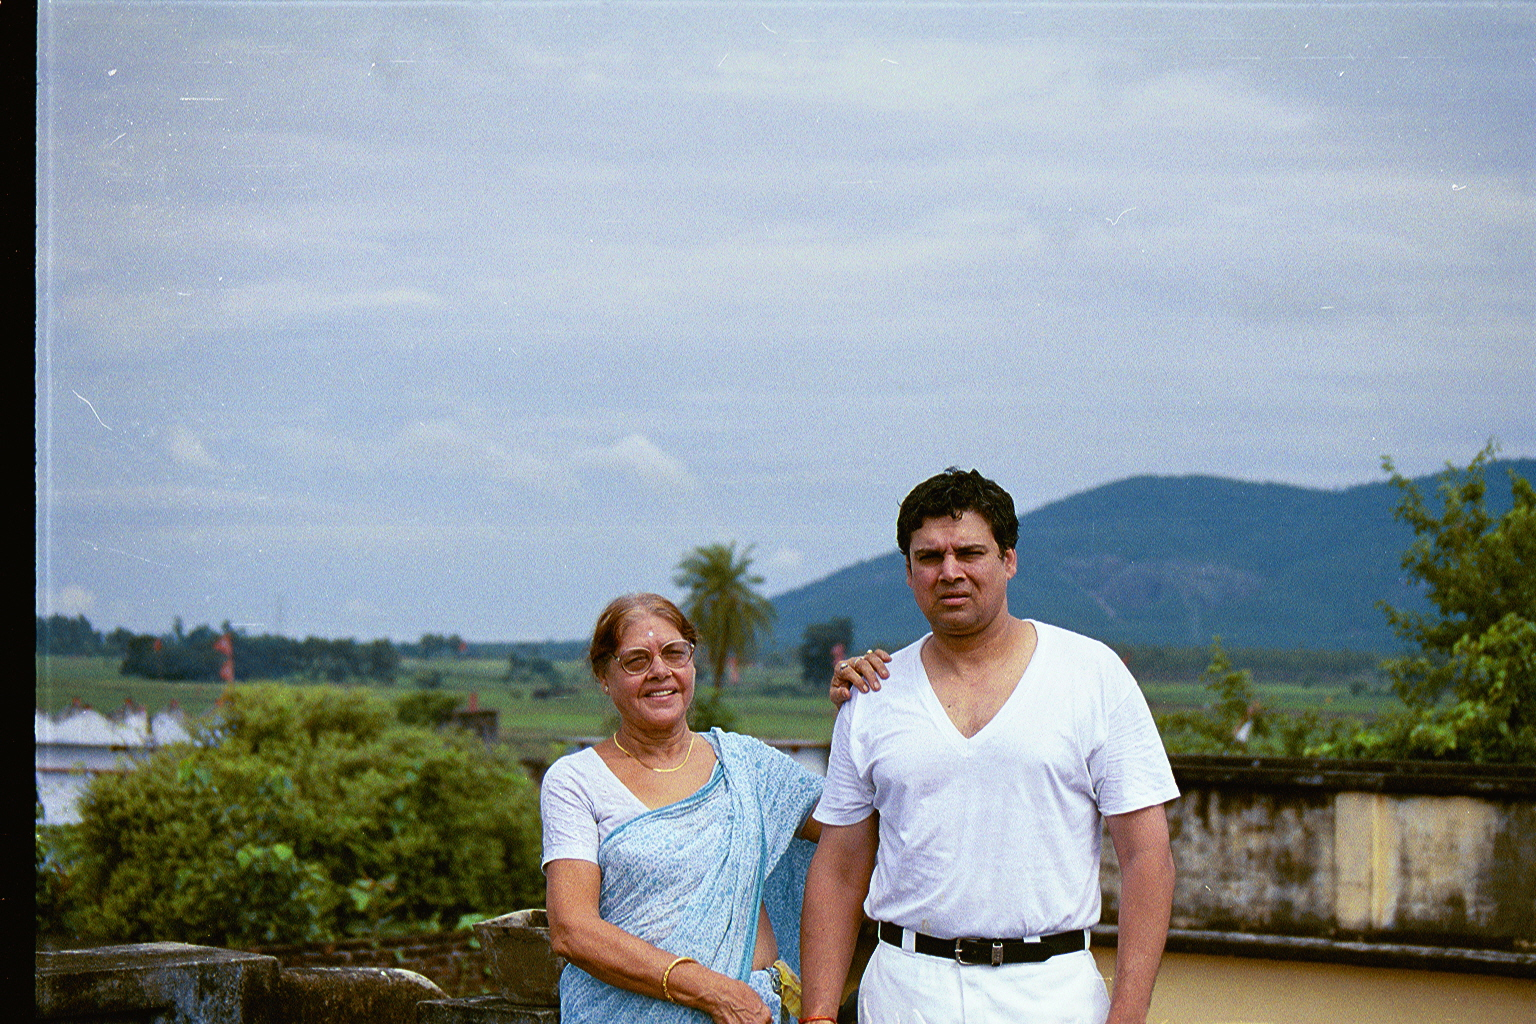 Mom and myself standing on the roof of the house, early in the morning, before breakfast